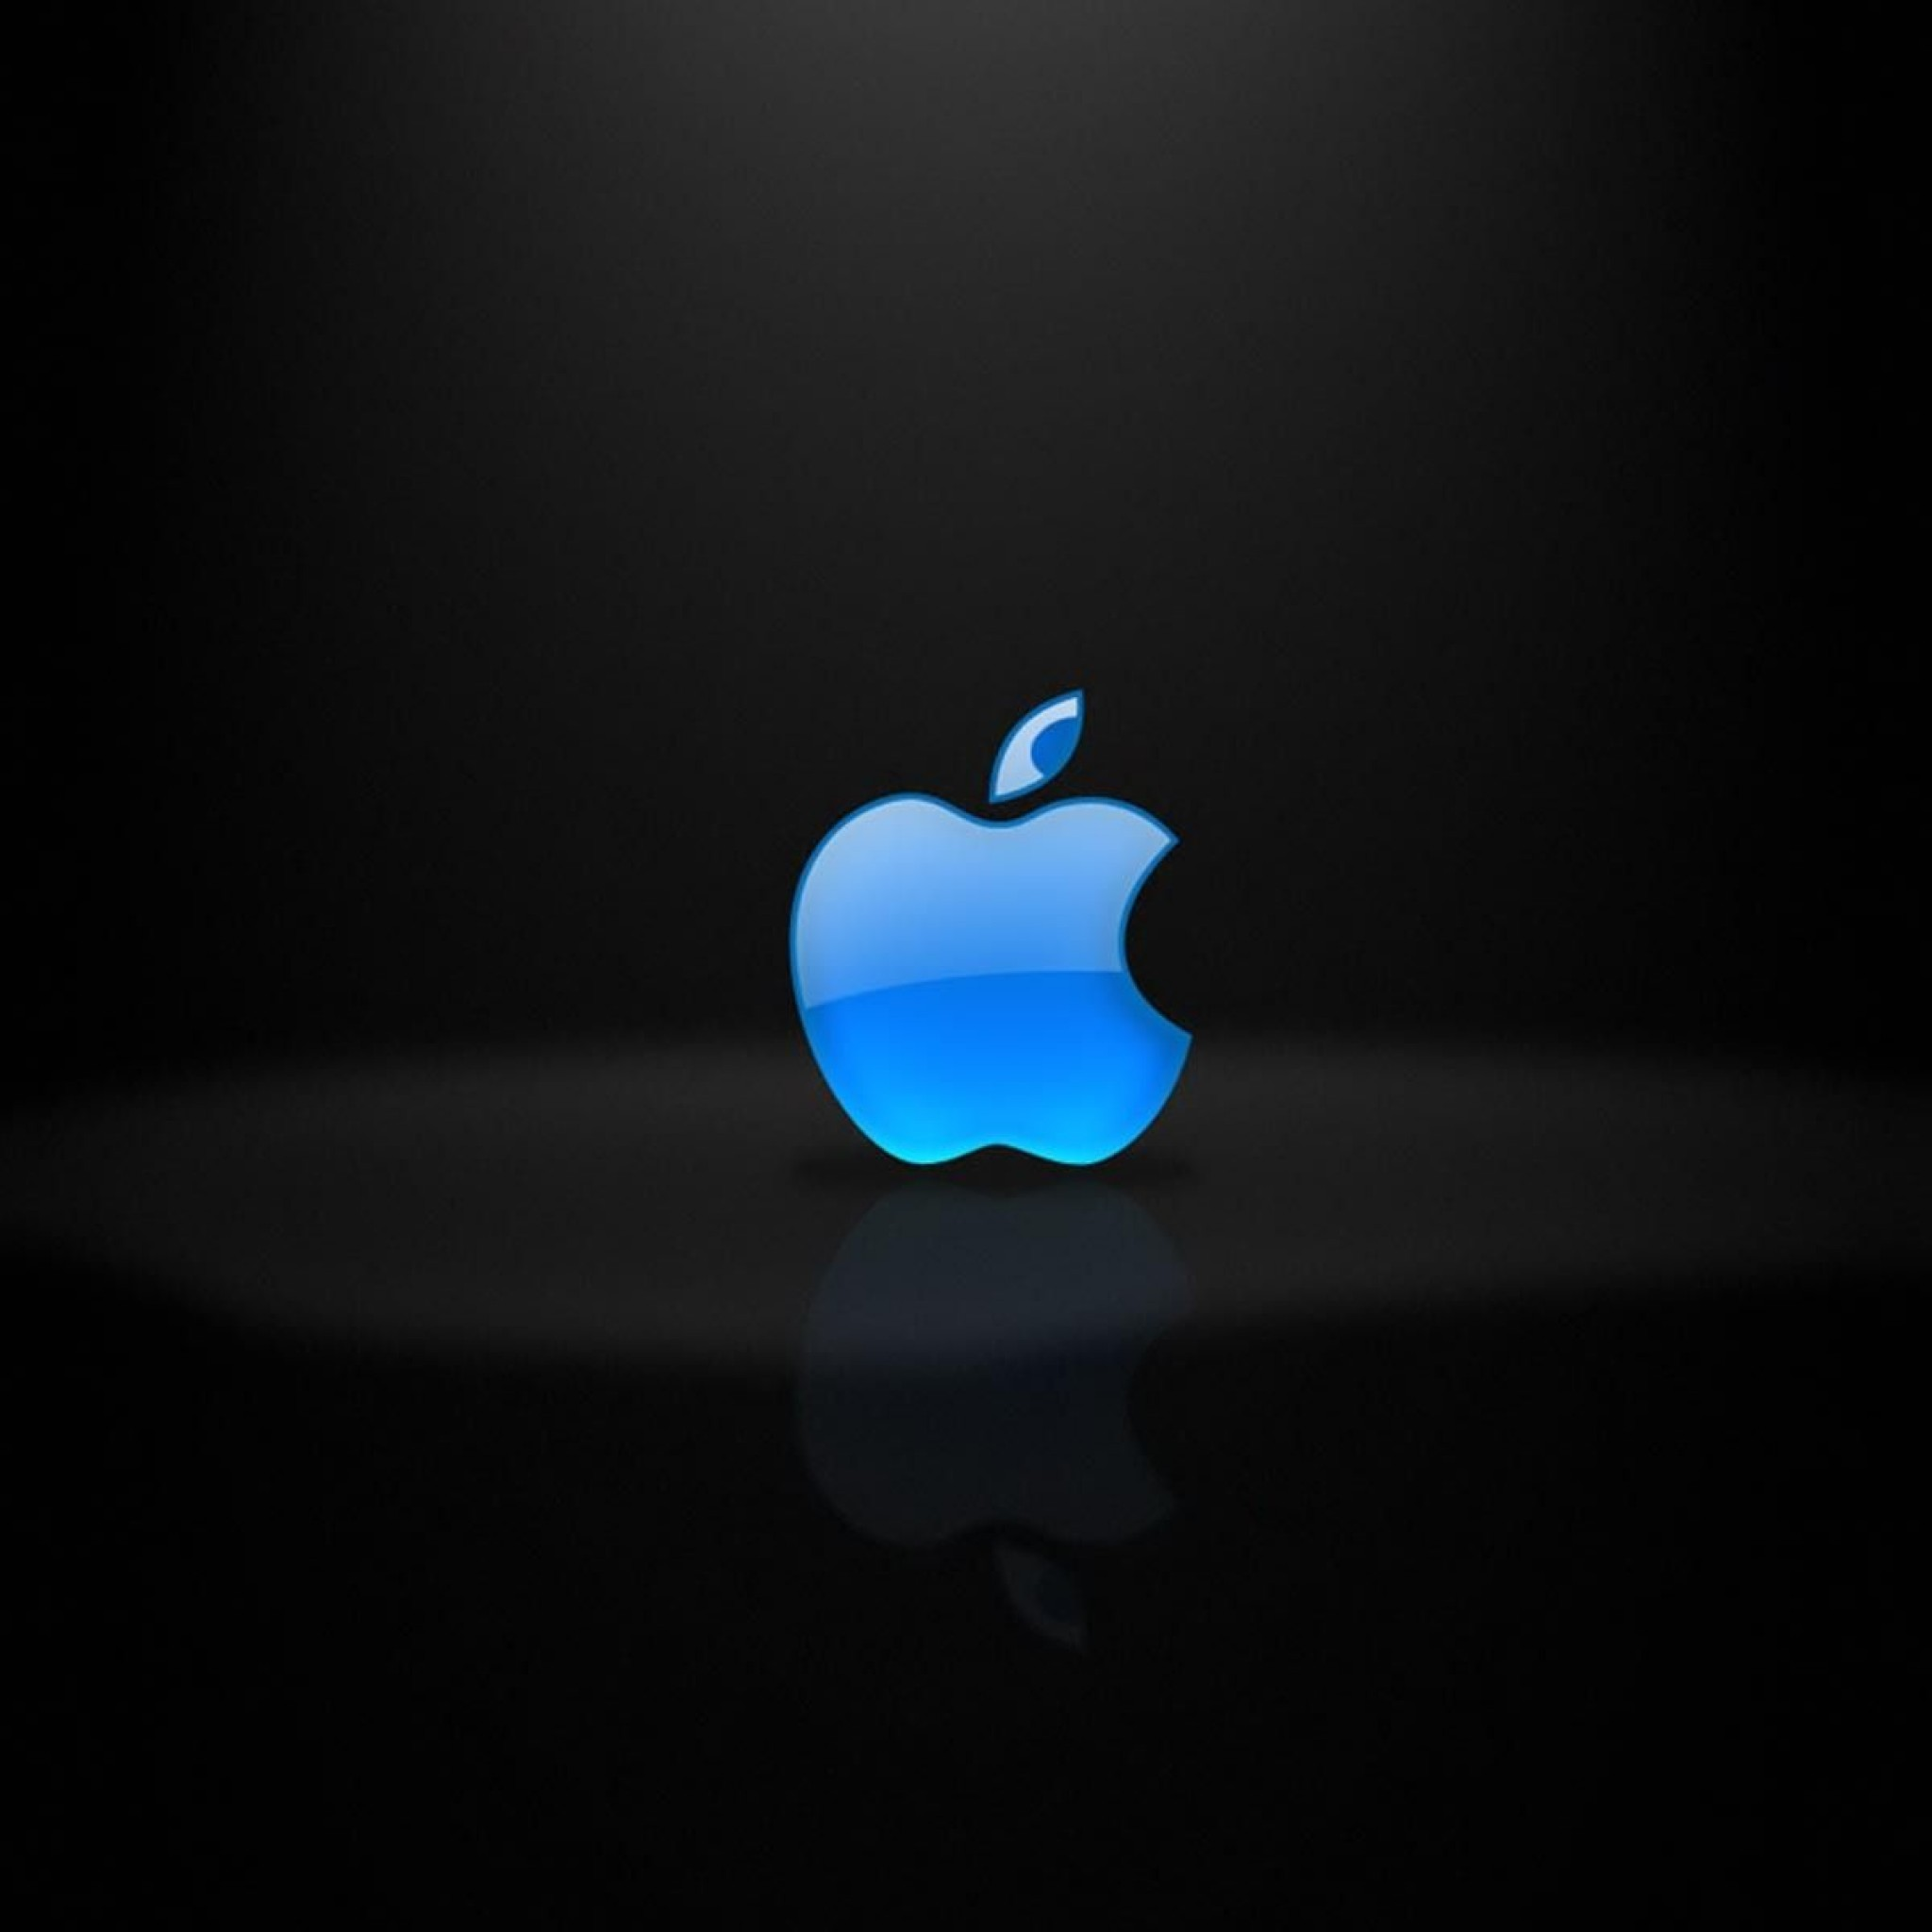 Apple IPhone Wallpapers High Quality